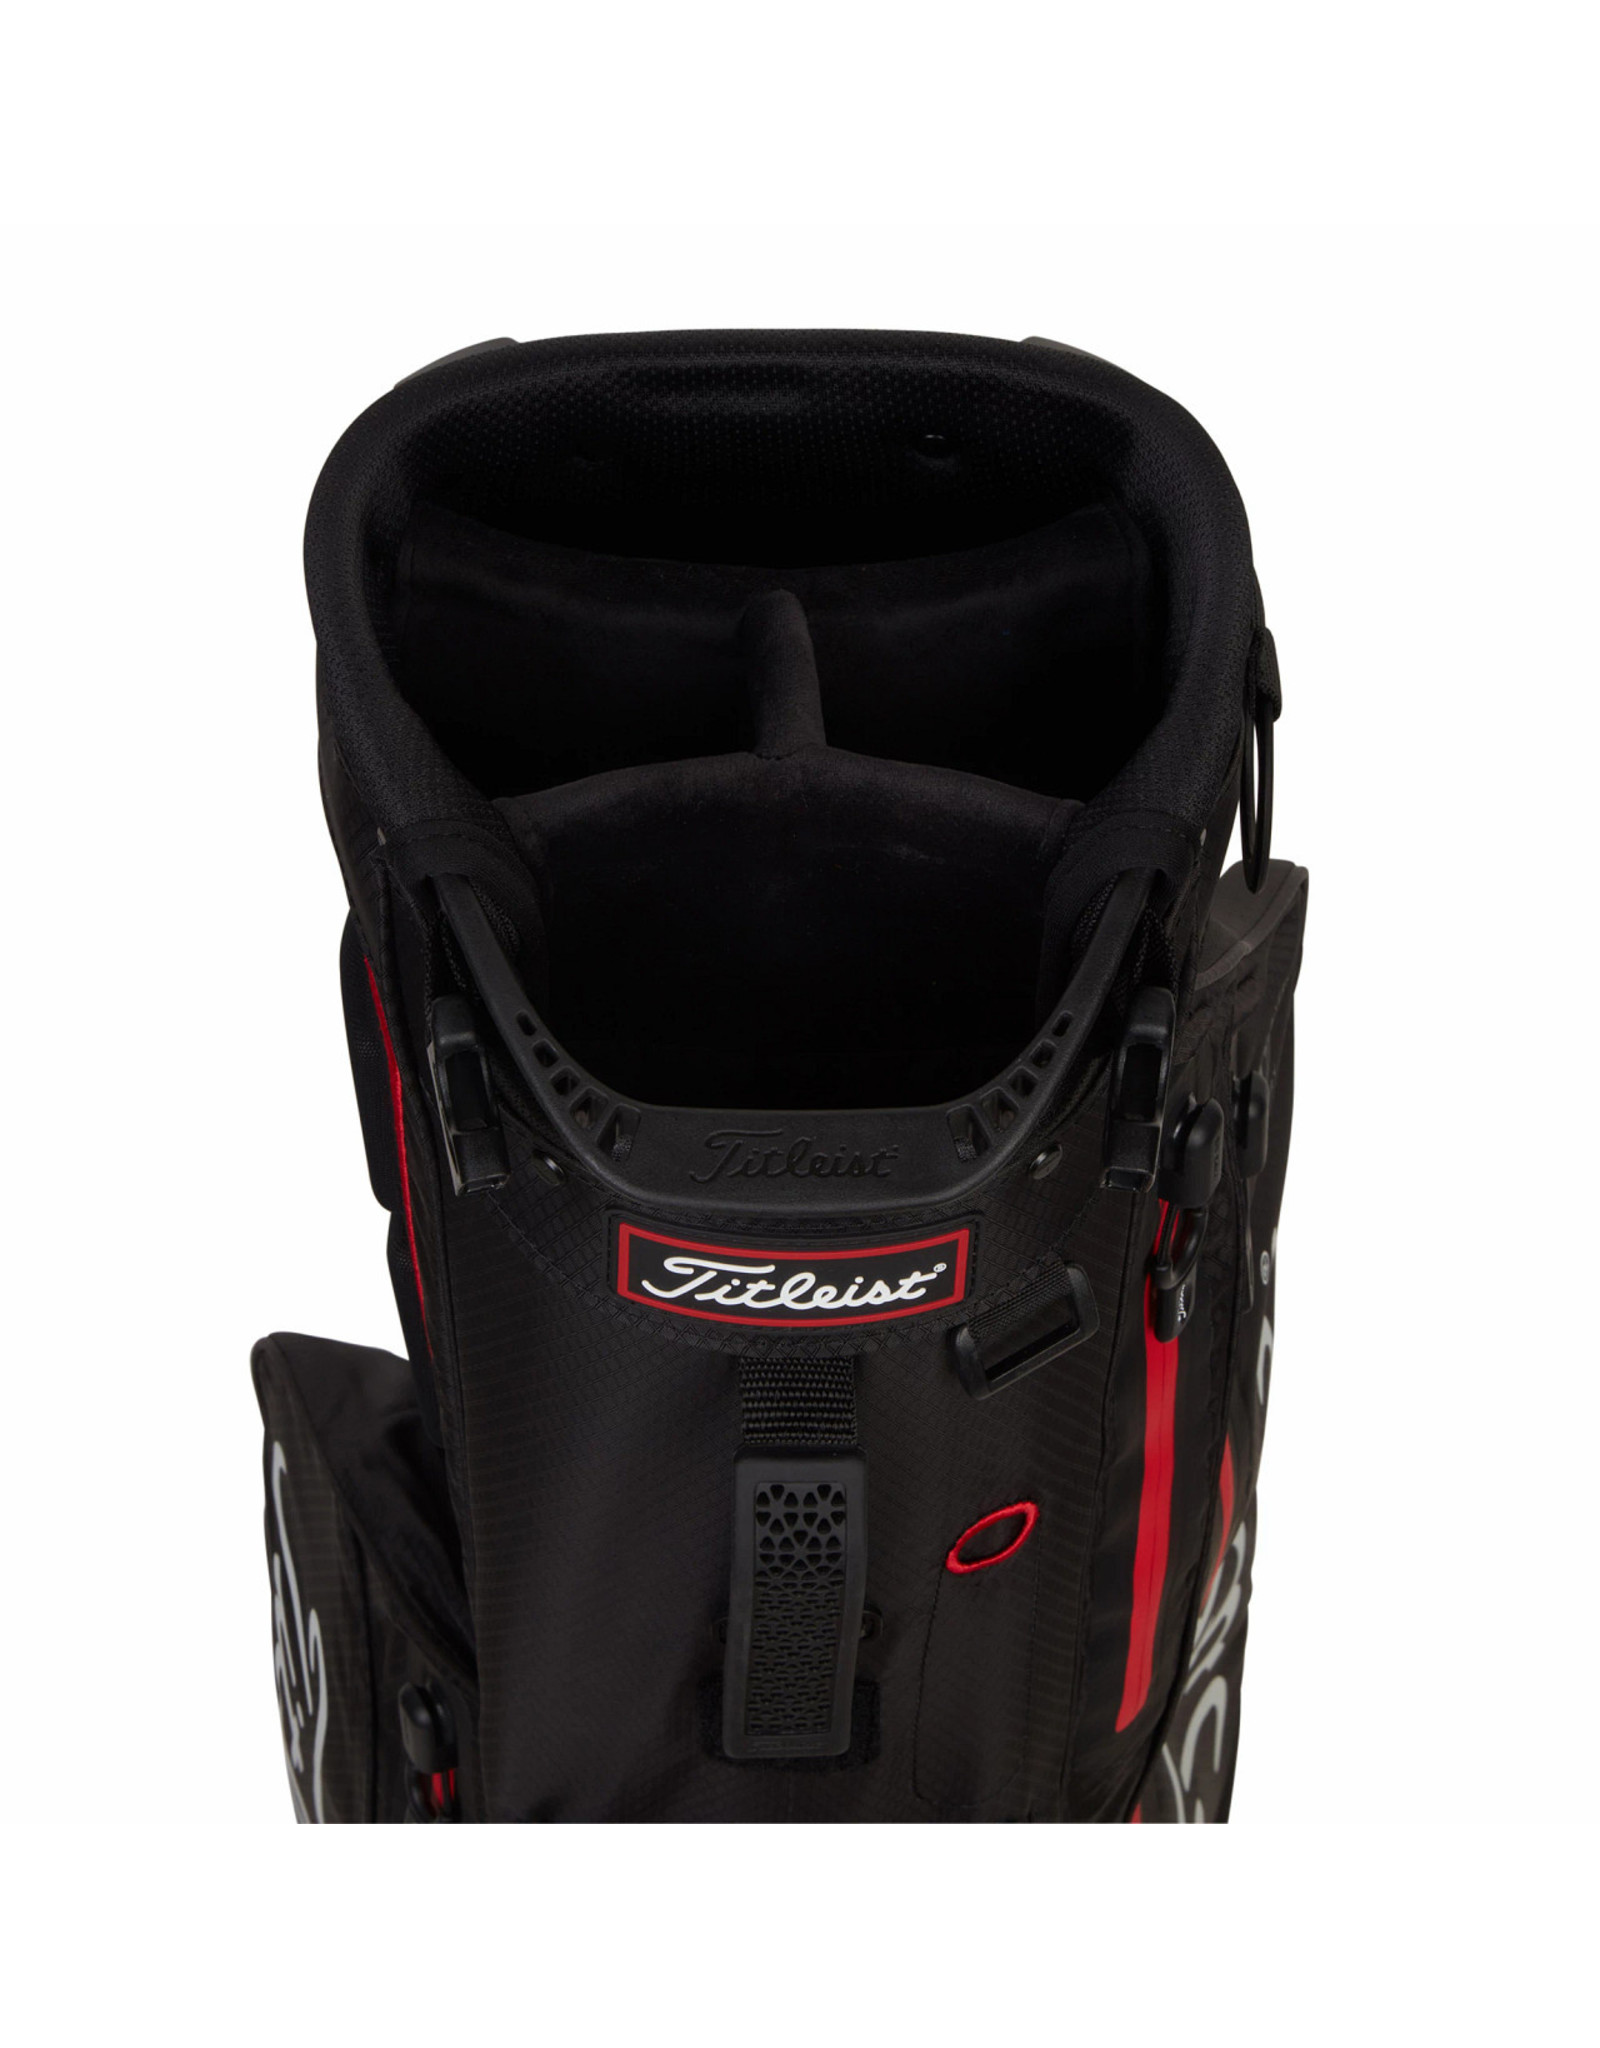 TITLEIST TITLEIST 2021 PLAYERS 4 STADRY CARRY BAG